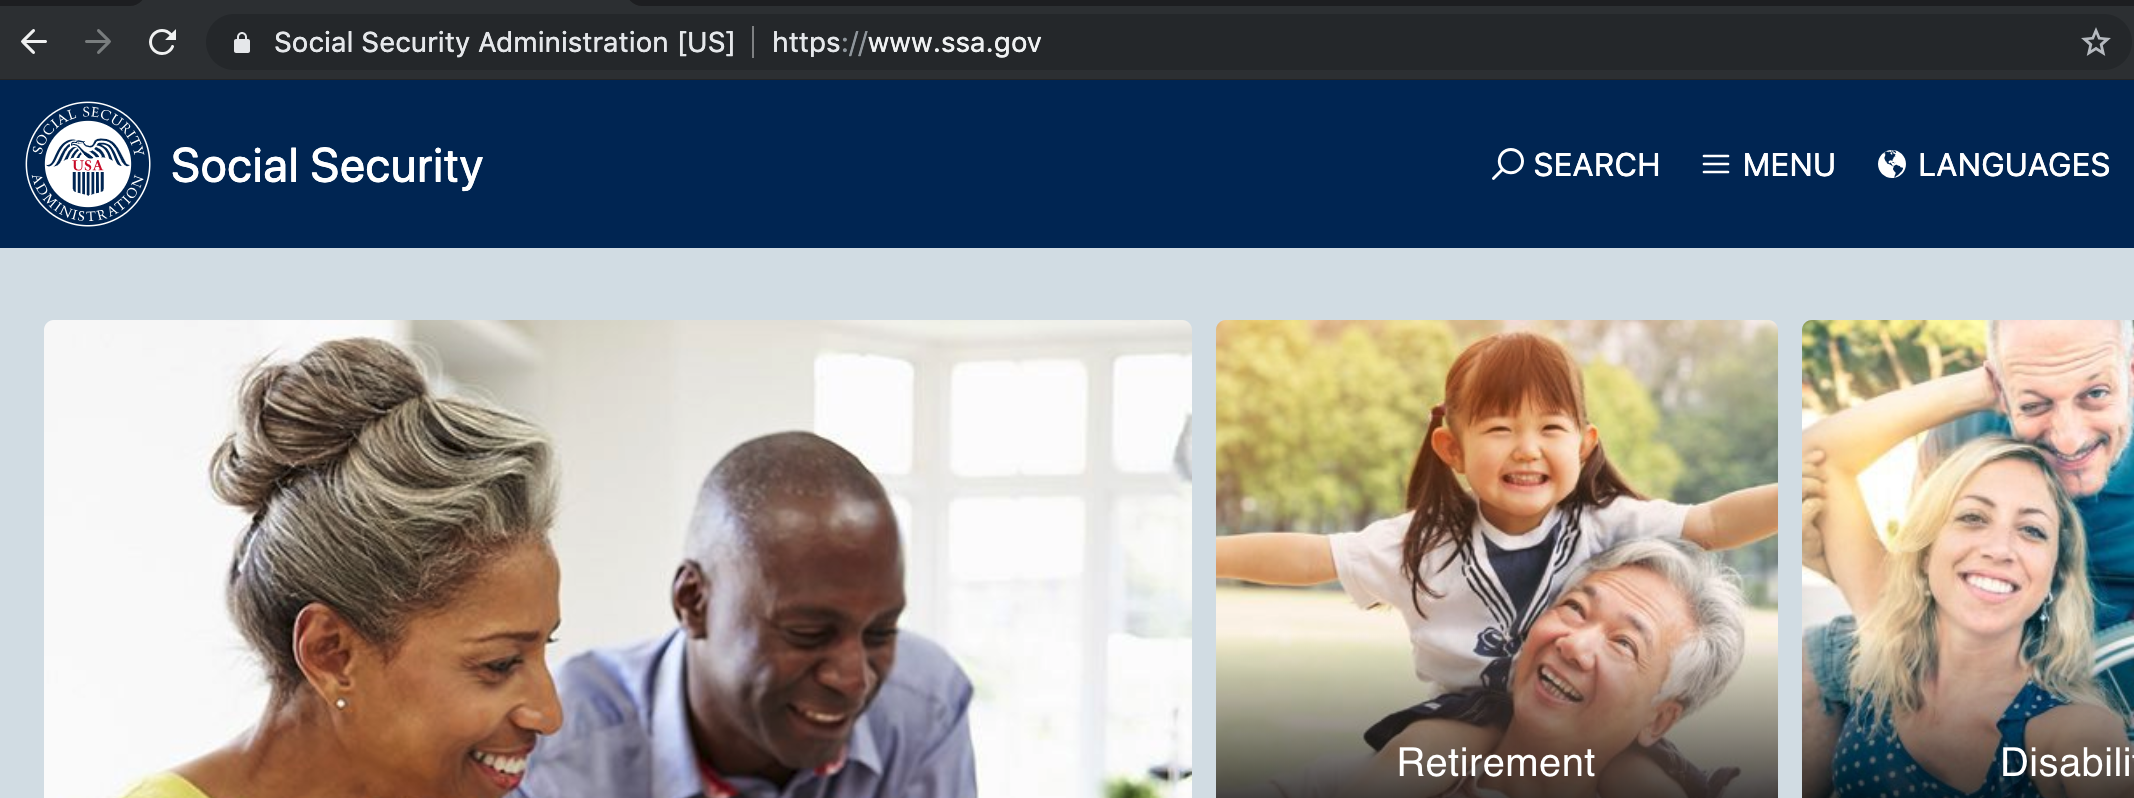 Signing Up for Medicare on SSA.gov